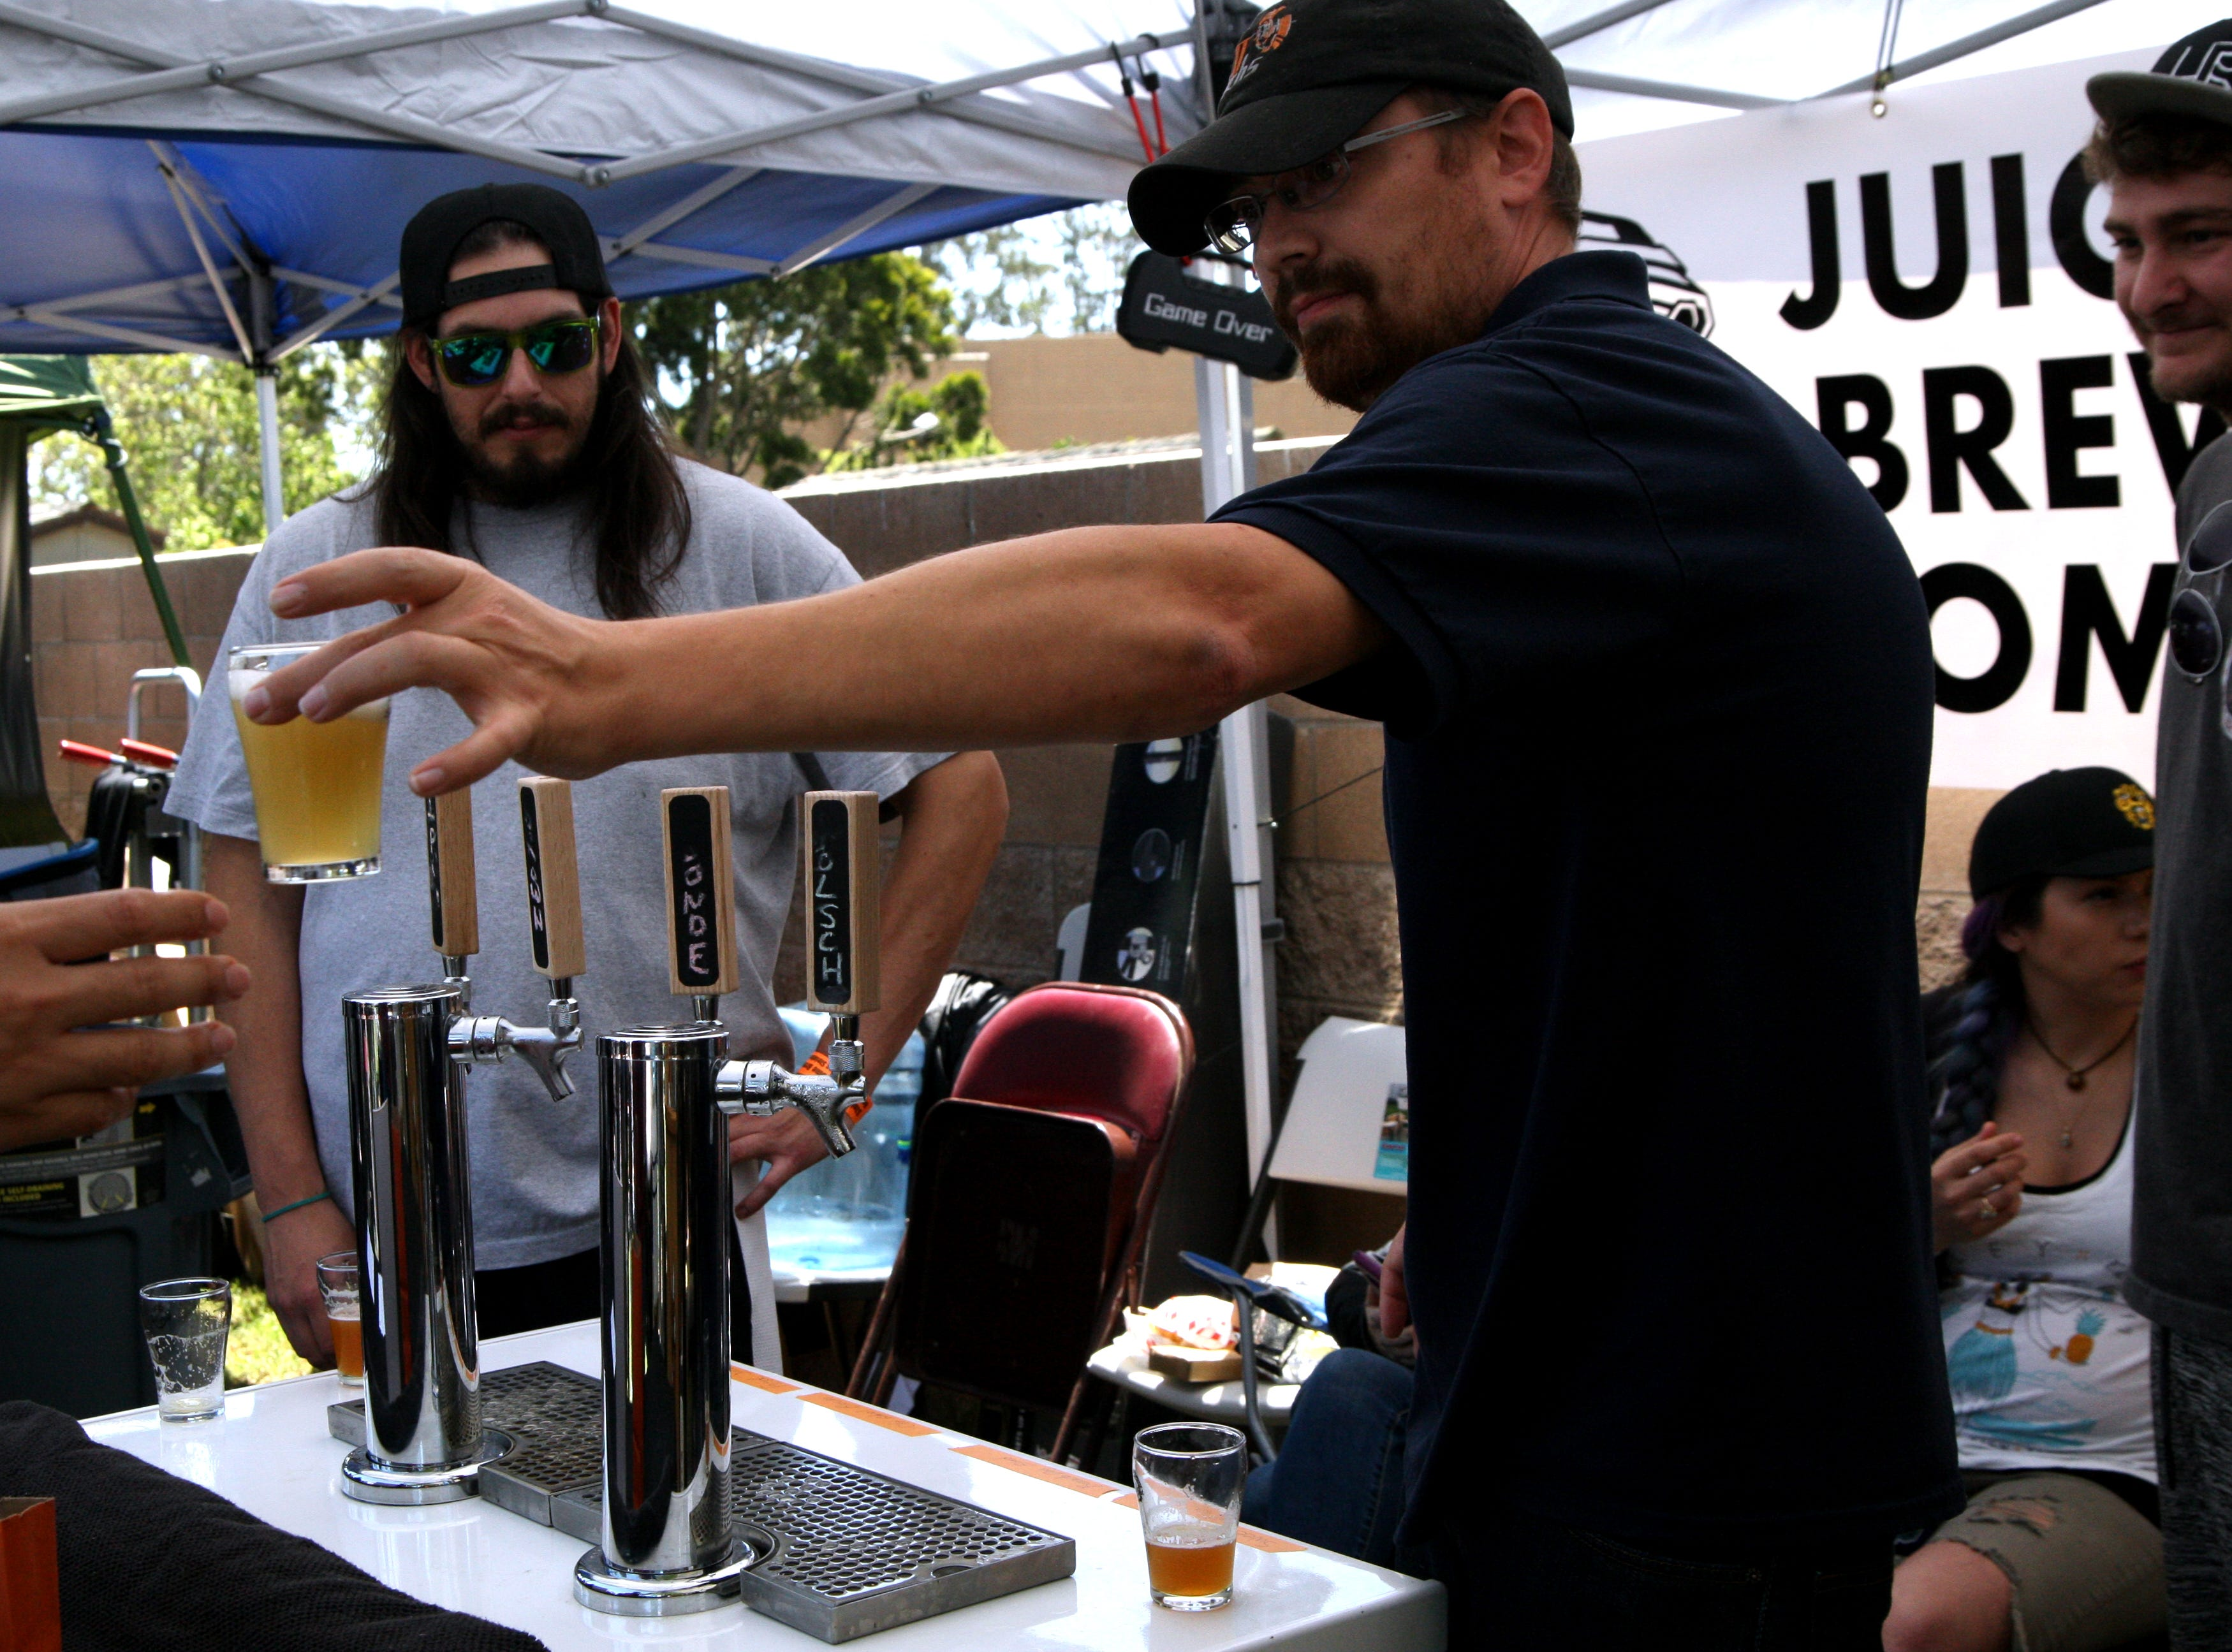 A home brewer for Juice Box pulls a beer for a customer. May 4, 2019.